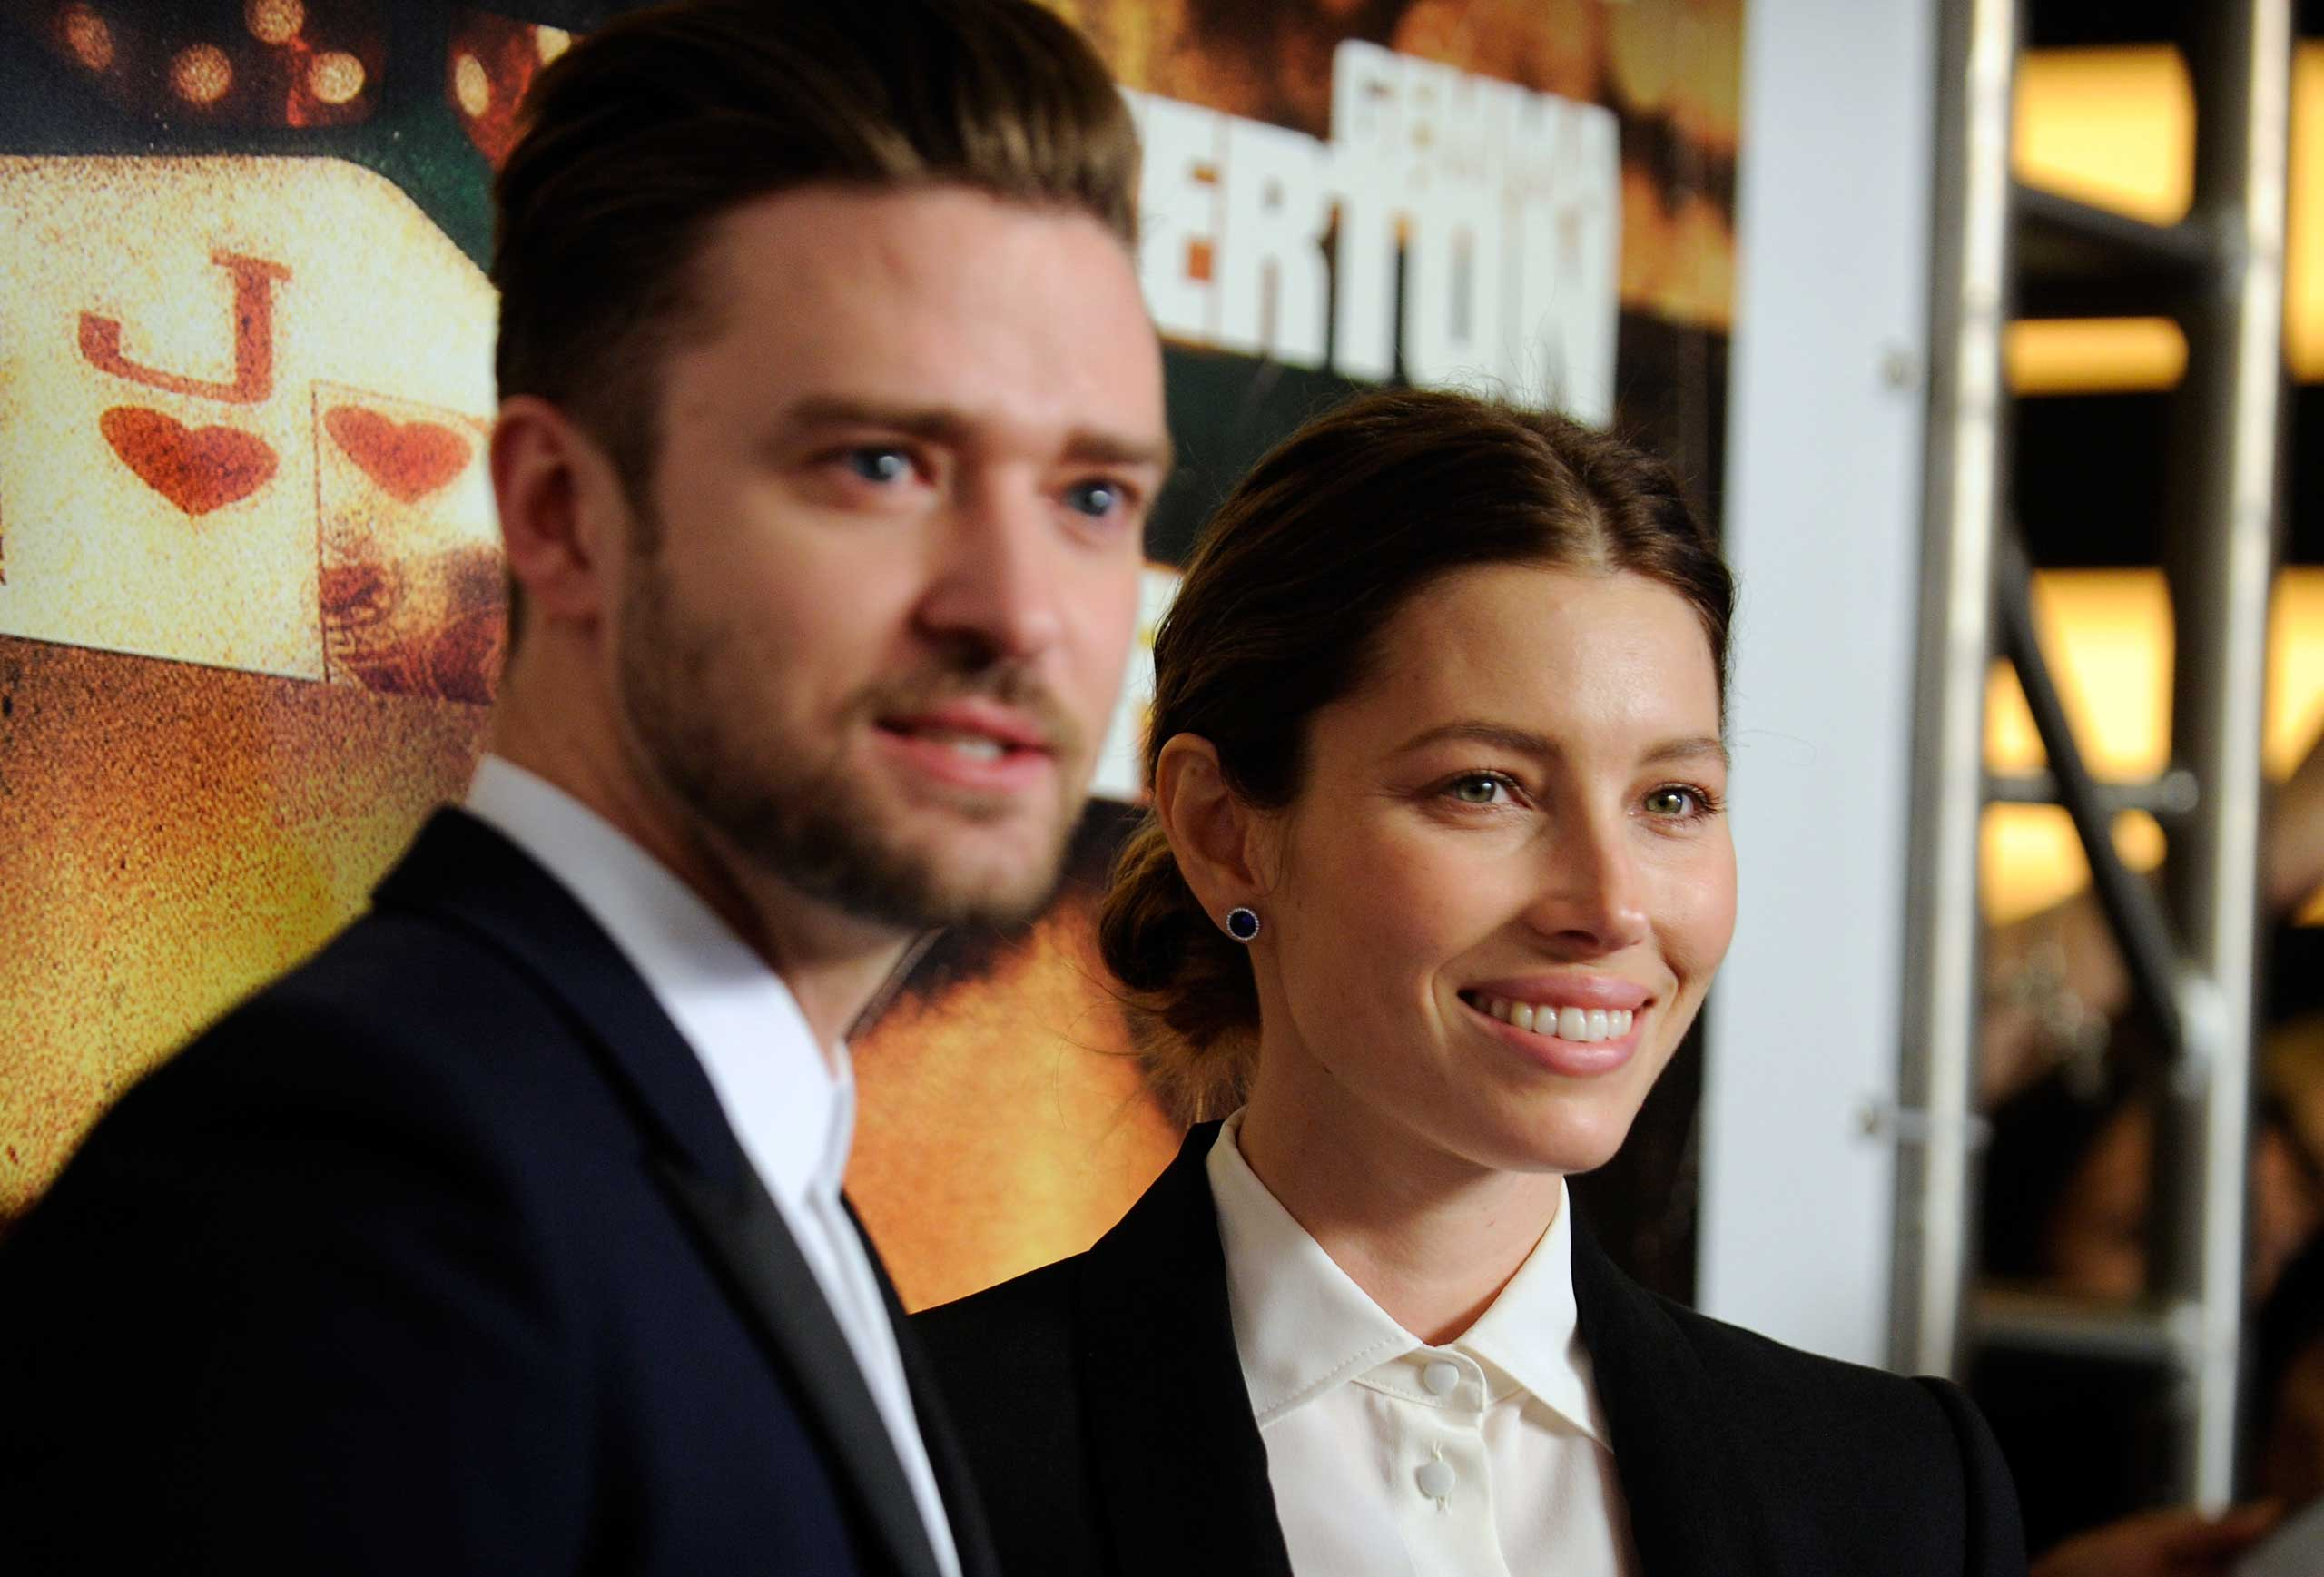 Justin Timberlake and Jessica Biel at a movie premiere in Las Vegas in 2013.